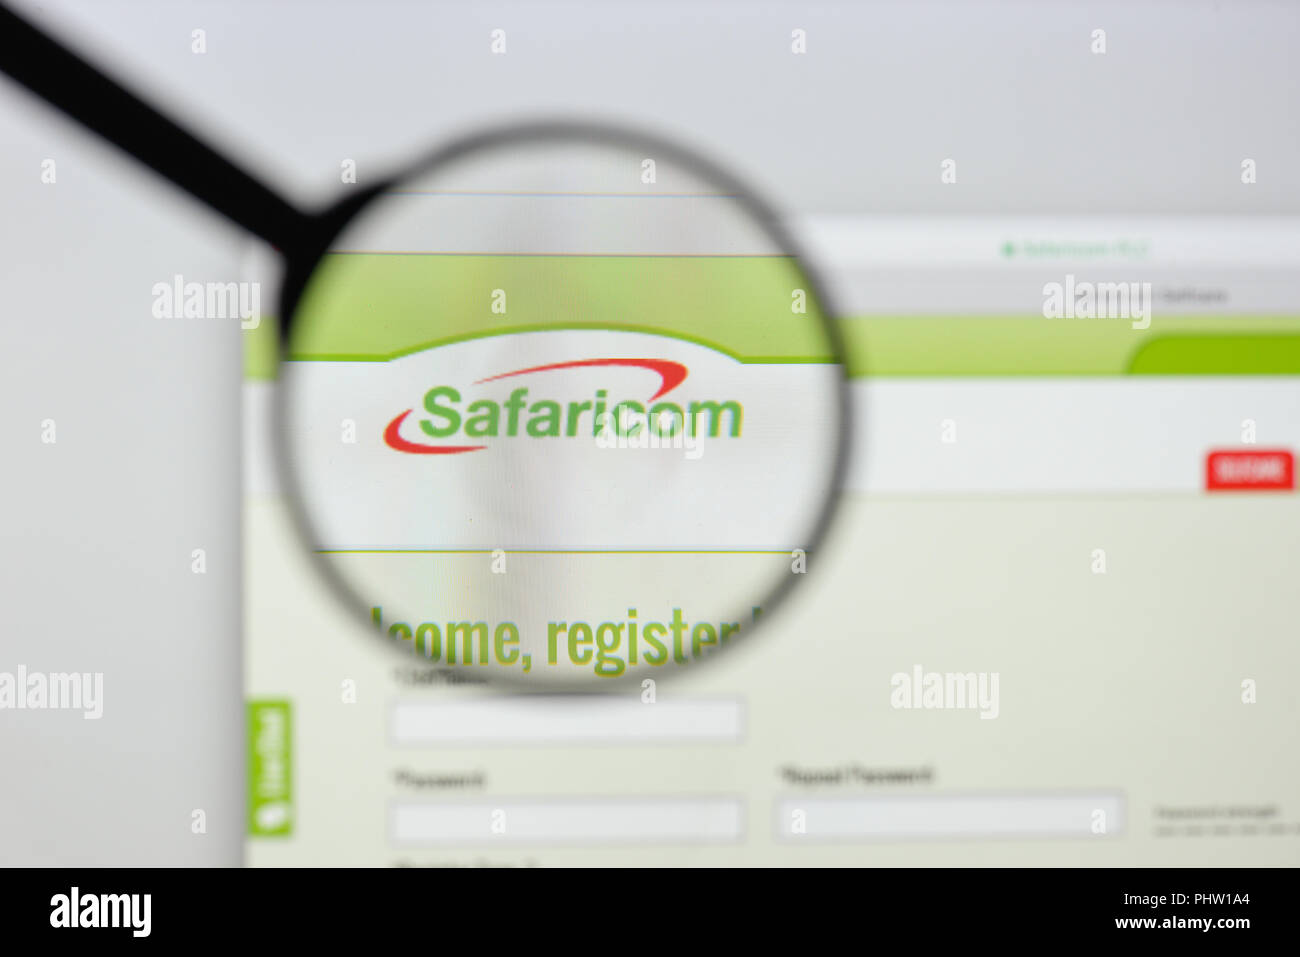 Milan, Italy - August 20, 2018: Safaricom website homepage. Safaricom logo visible. Stock Photo